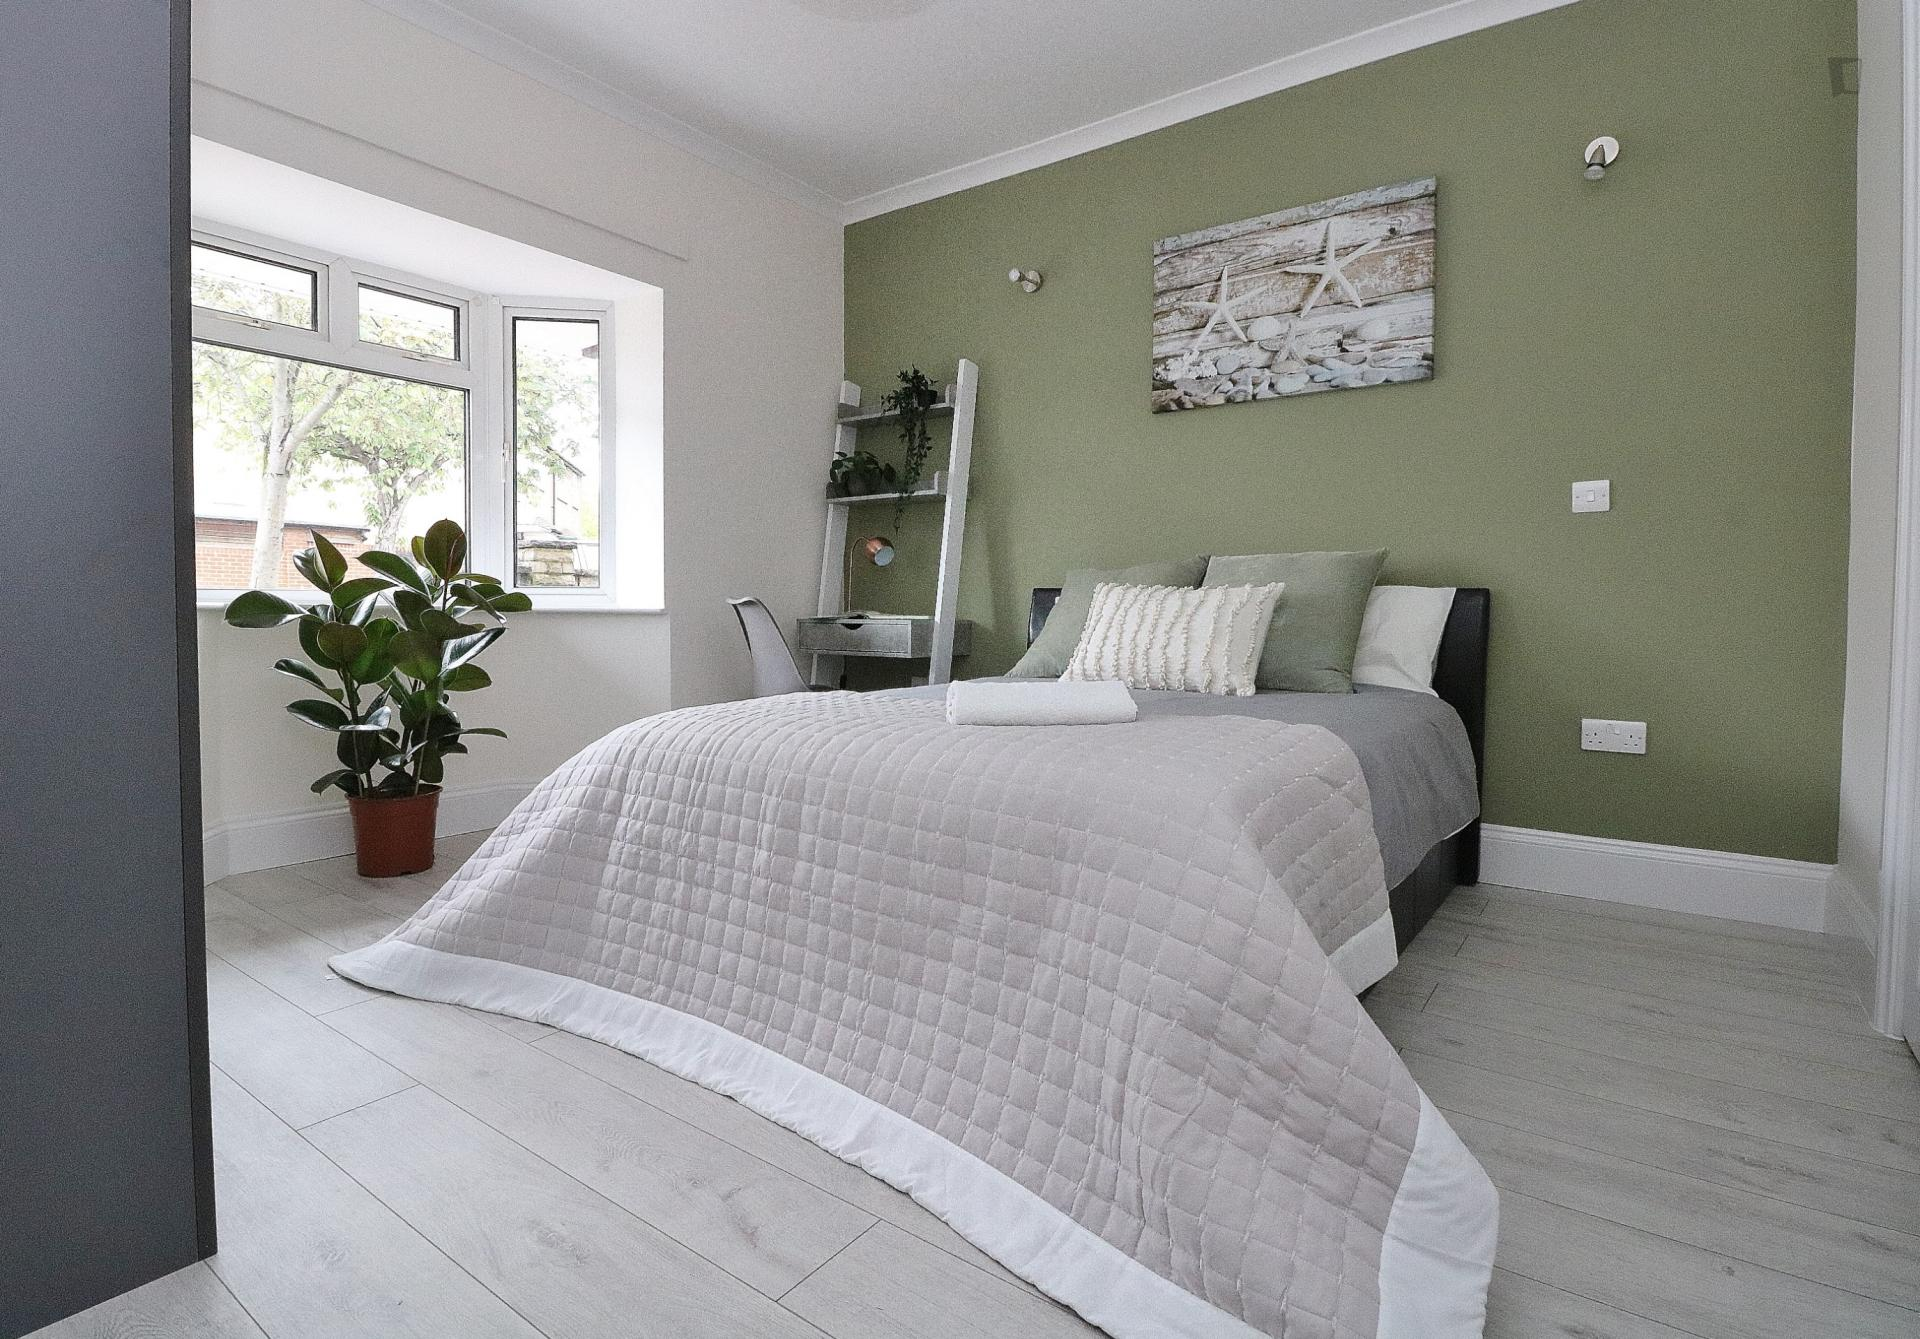 Fairway - Modern bedroom in London for expats